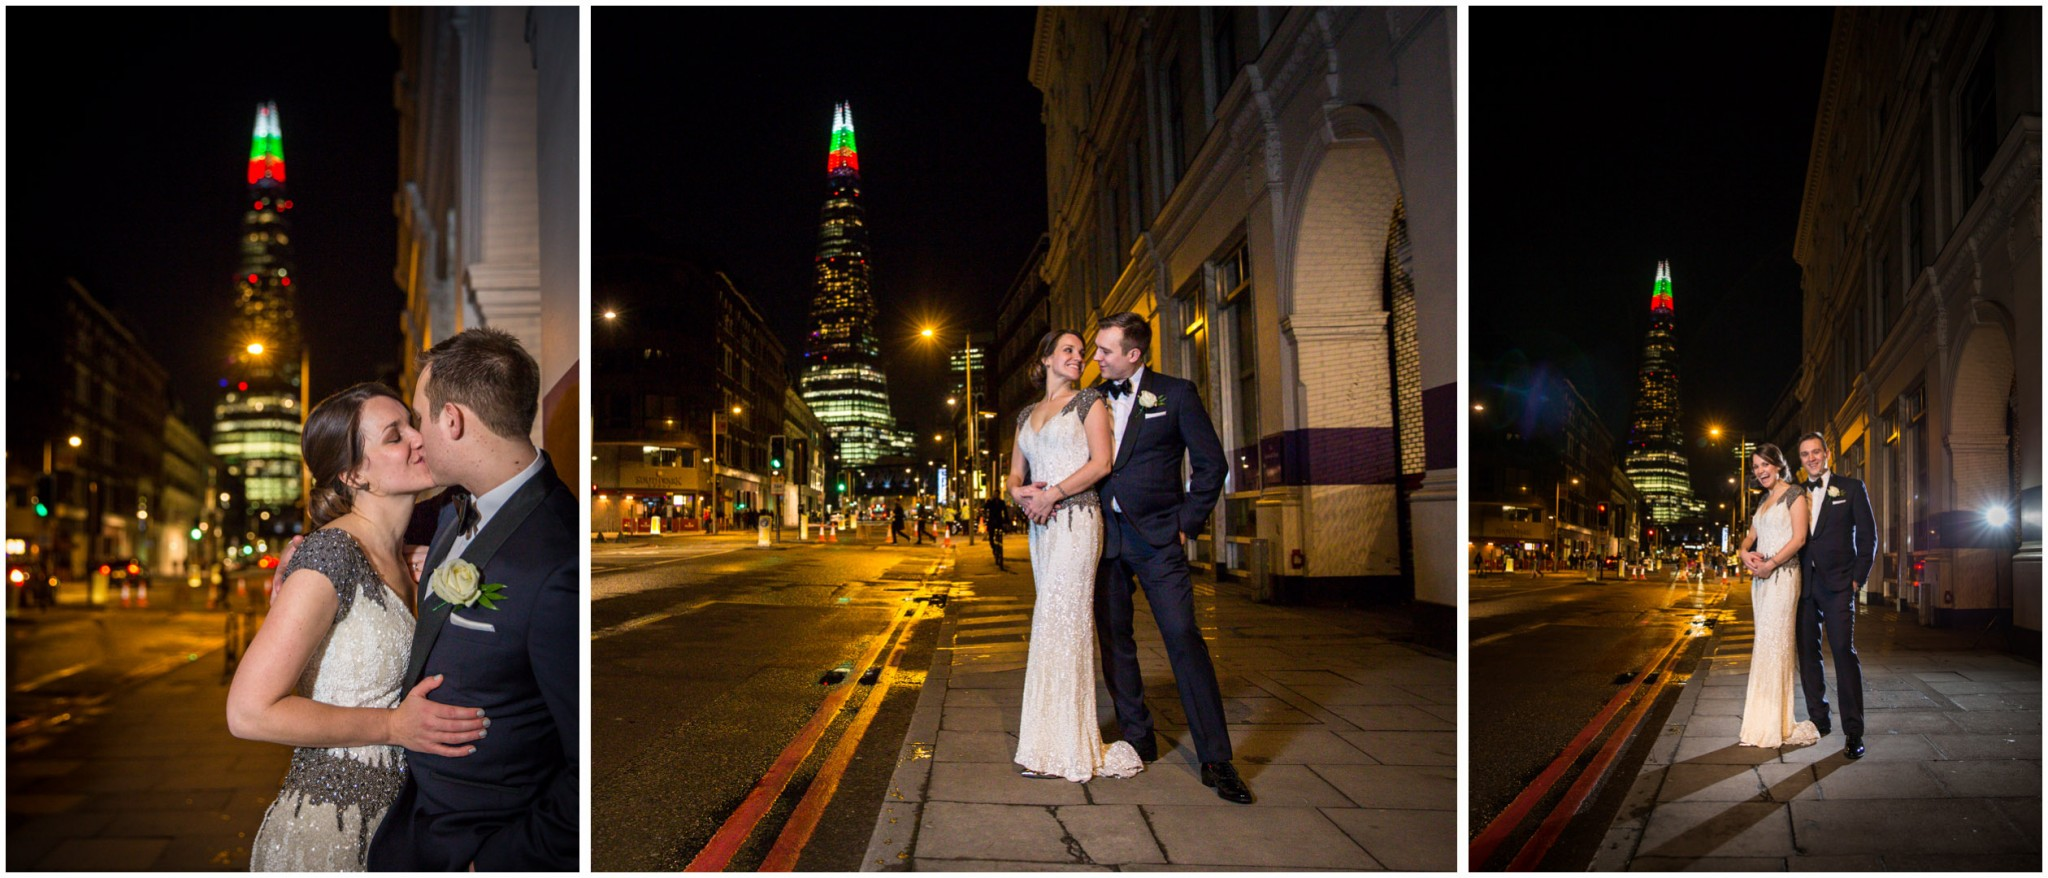 hixter-bankside-wedding-photographer-075